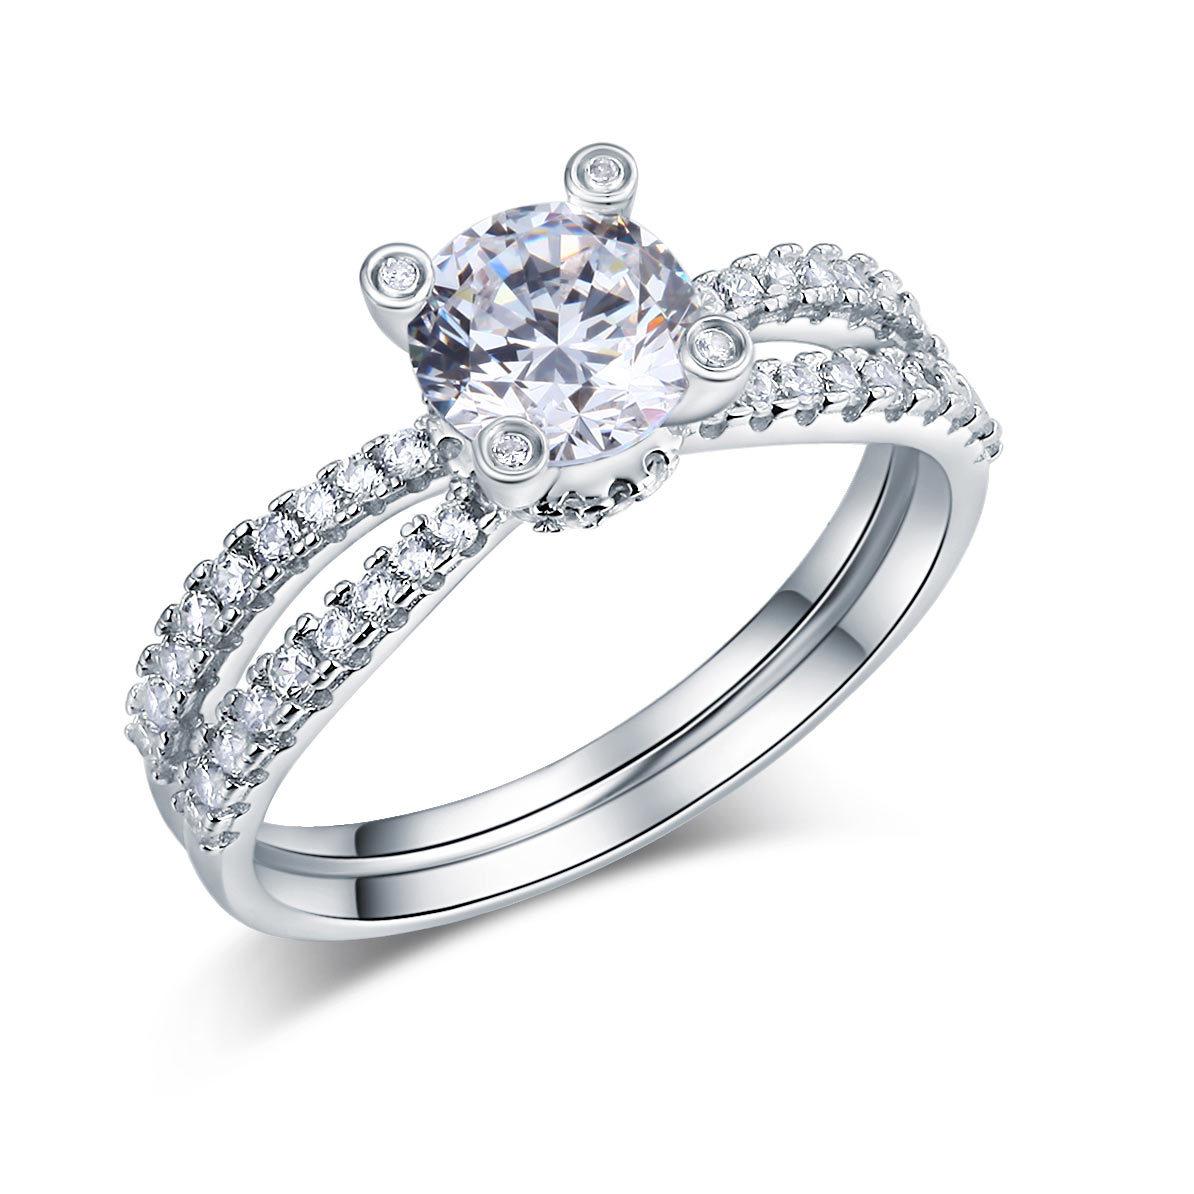 925 Sterling Silver Wedding Engagement Ring 1.25 Carat Round Lab Created Diamond